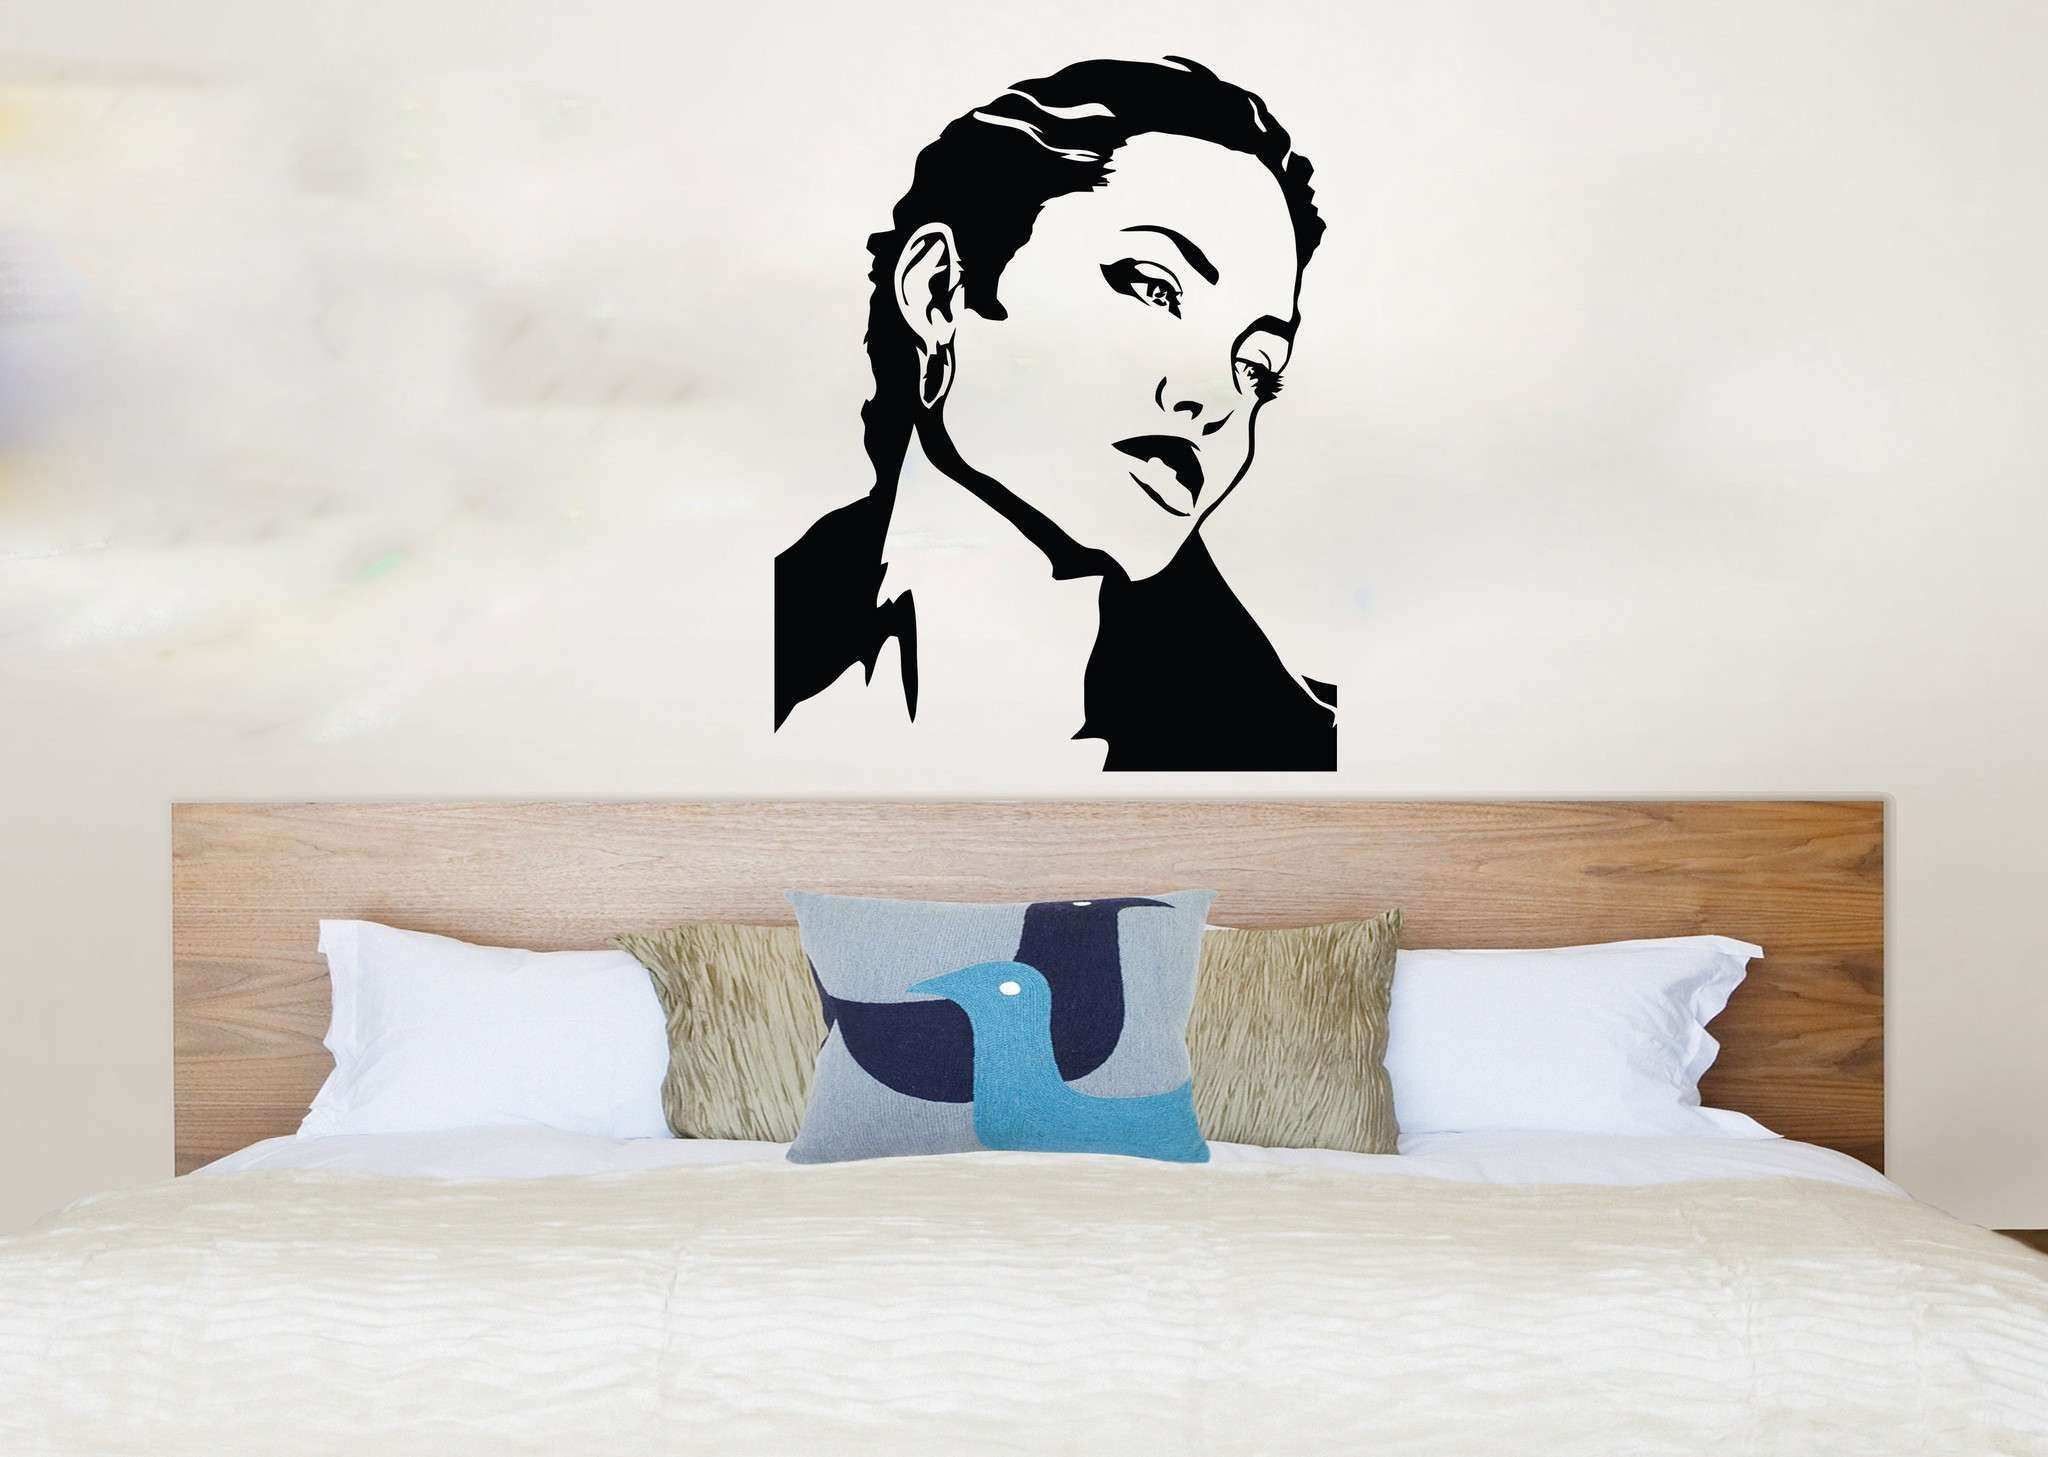 Wall Hanging Ideas for Bedrooms Unique Wall Decals for Bedroom